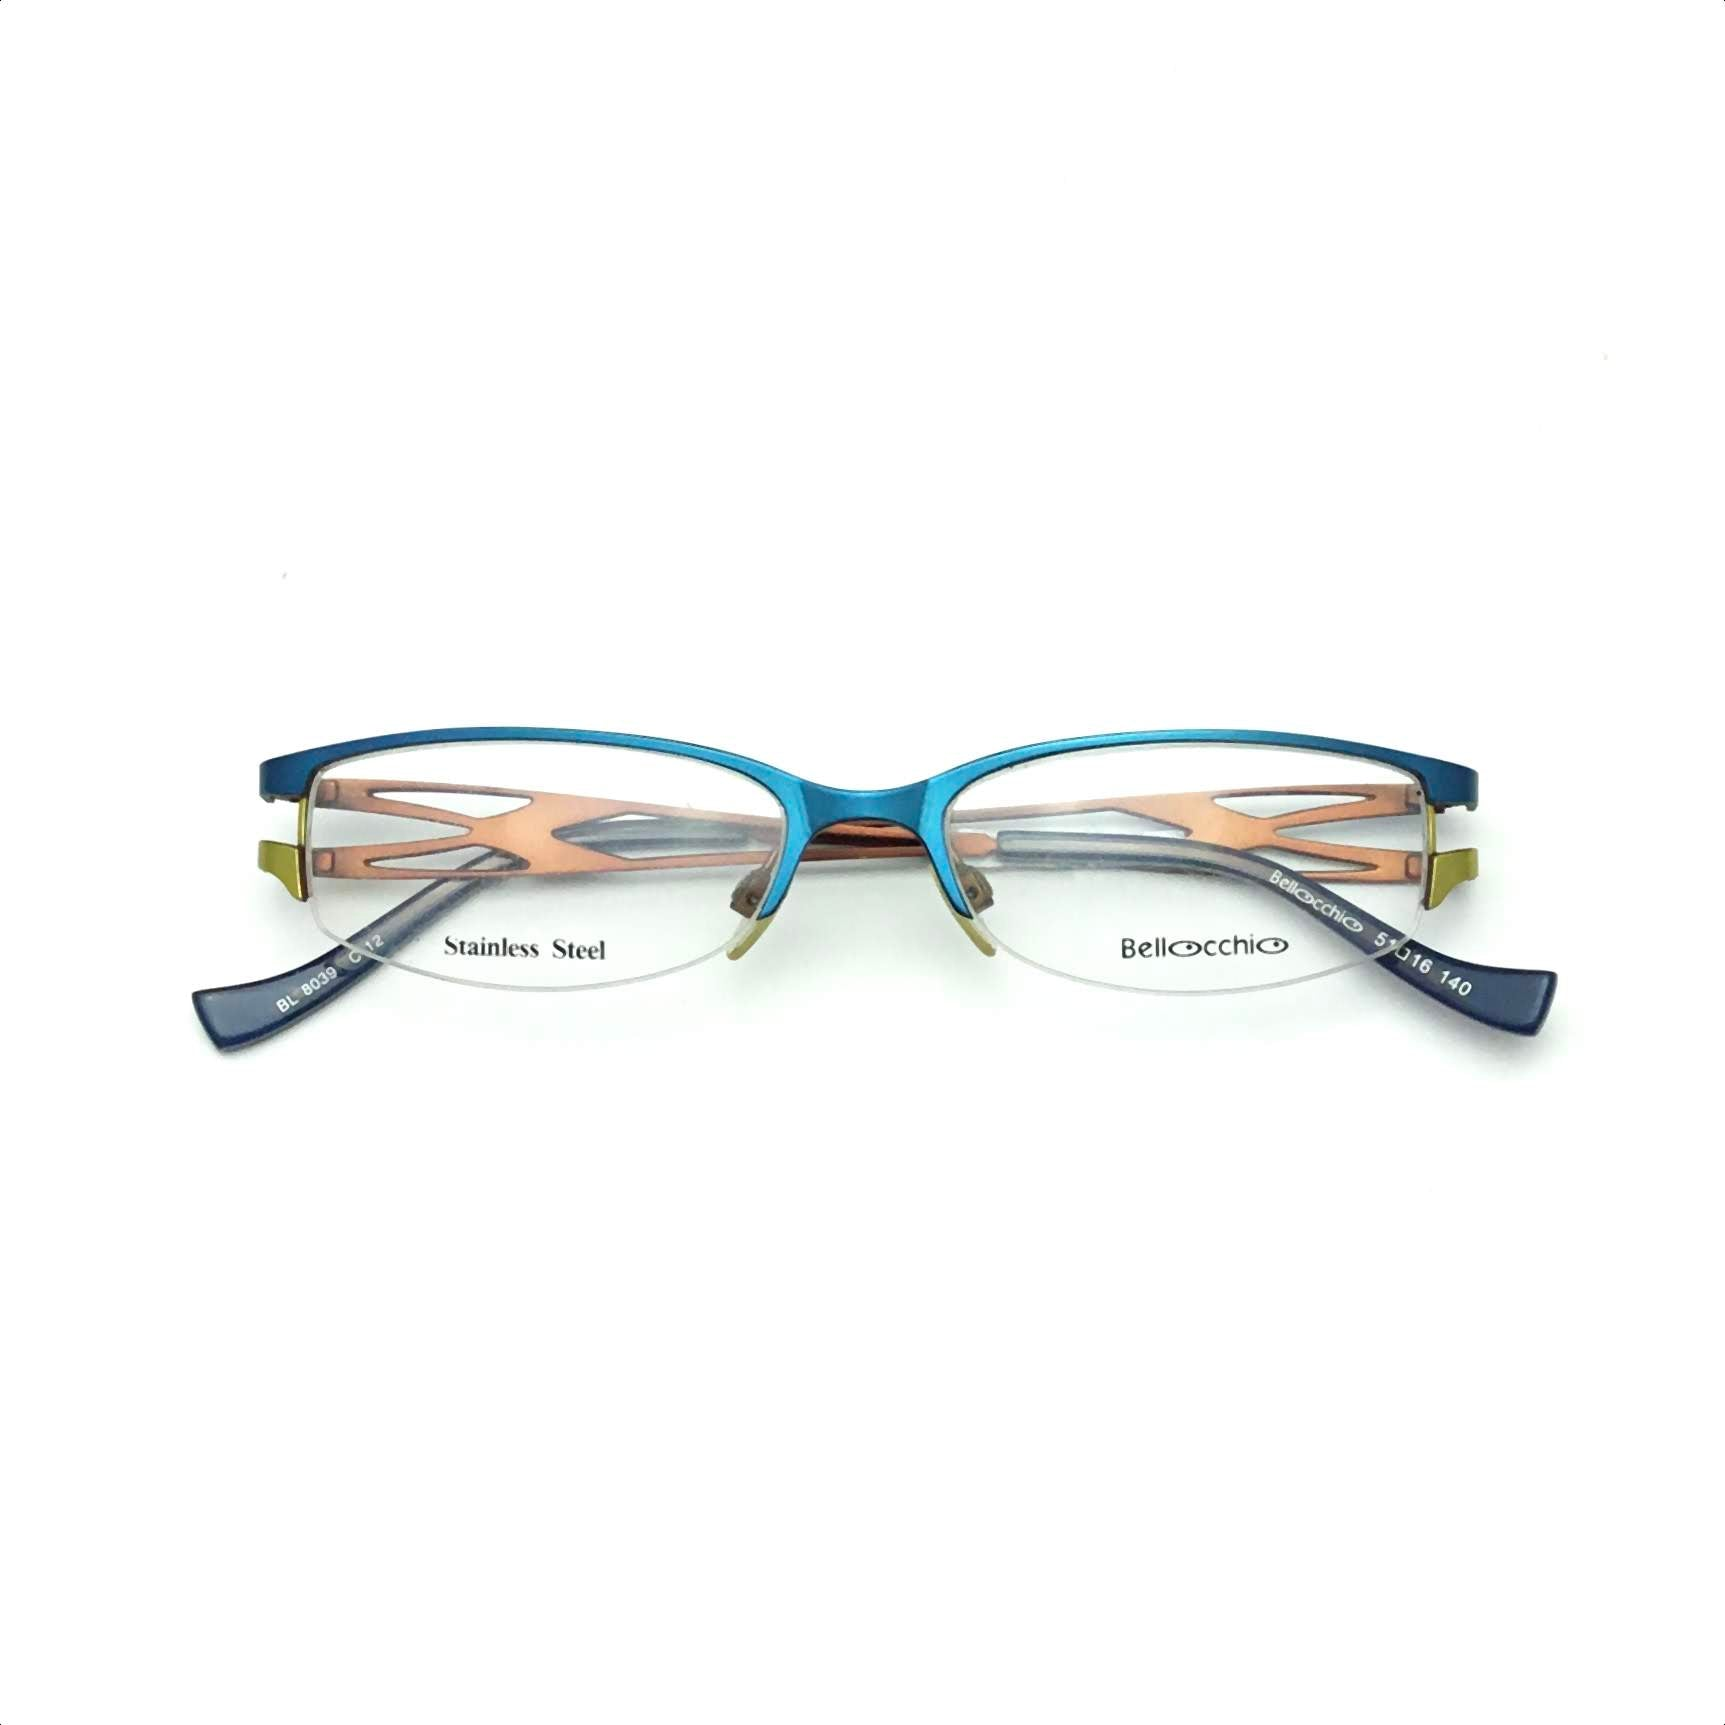 Bellochio Glasses $19 Nylon A5